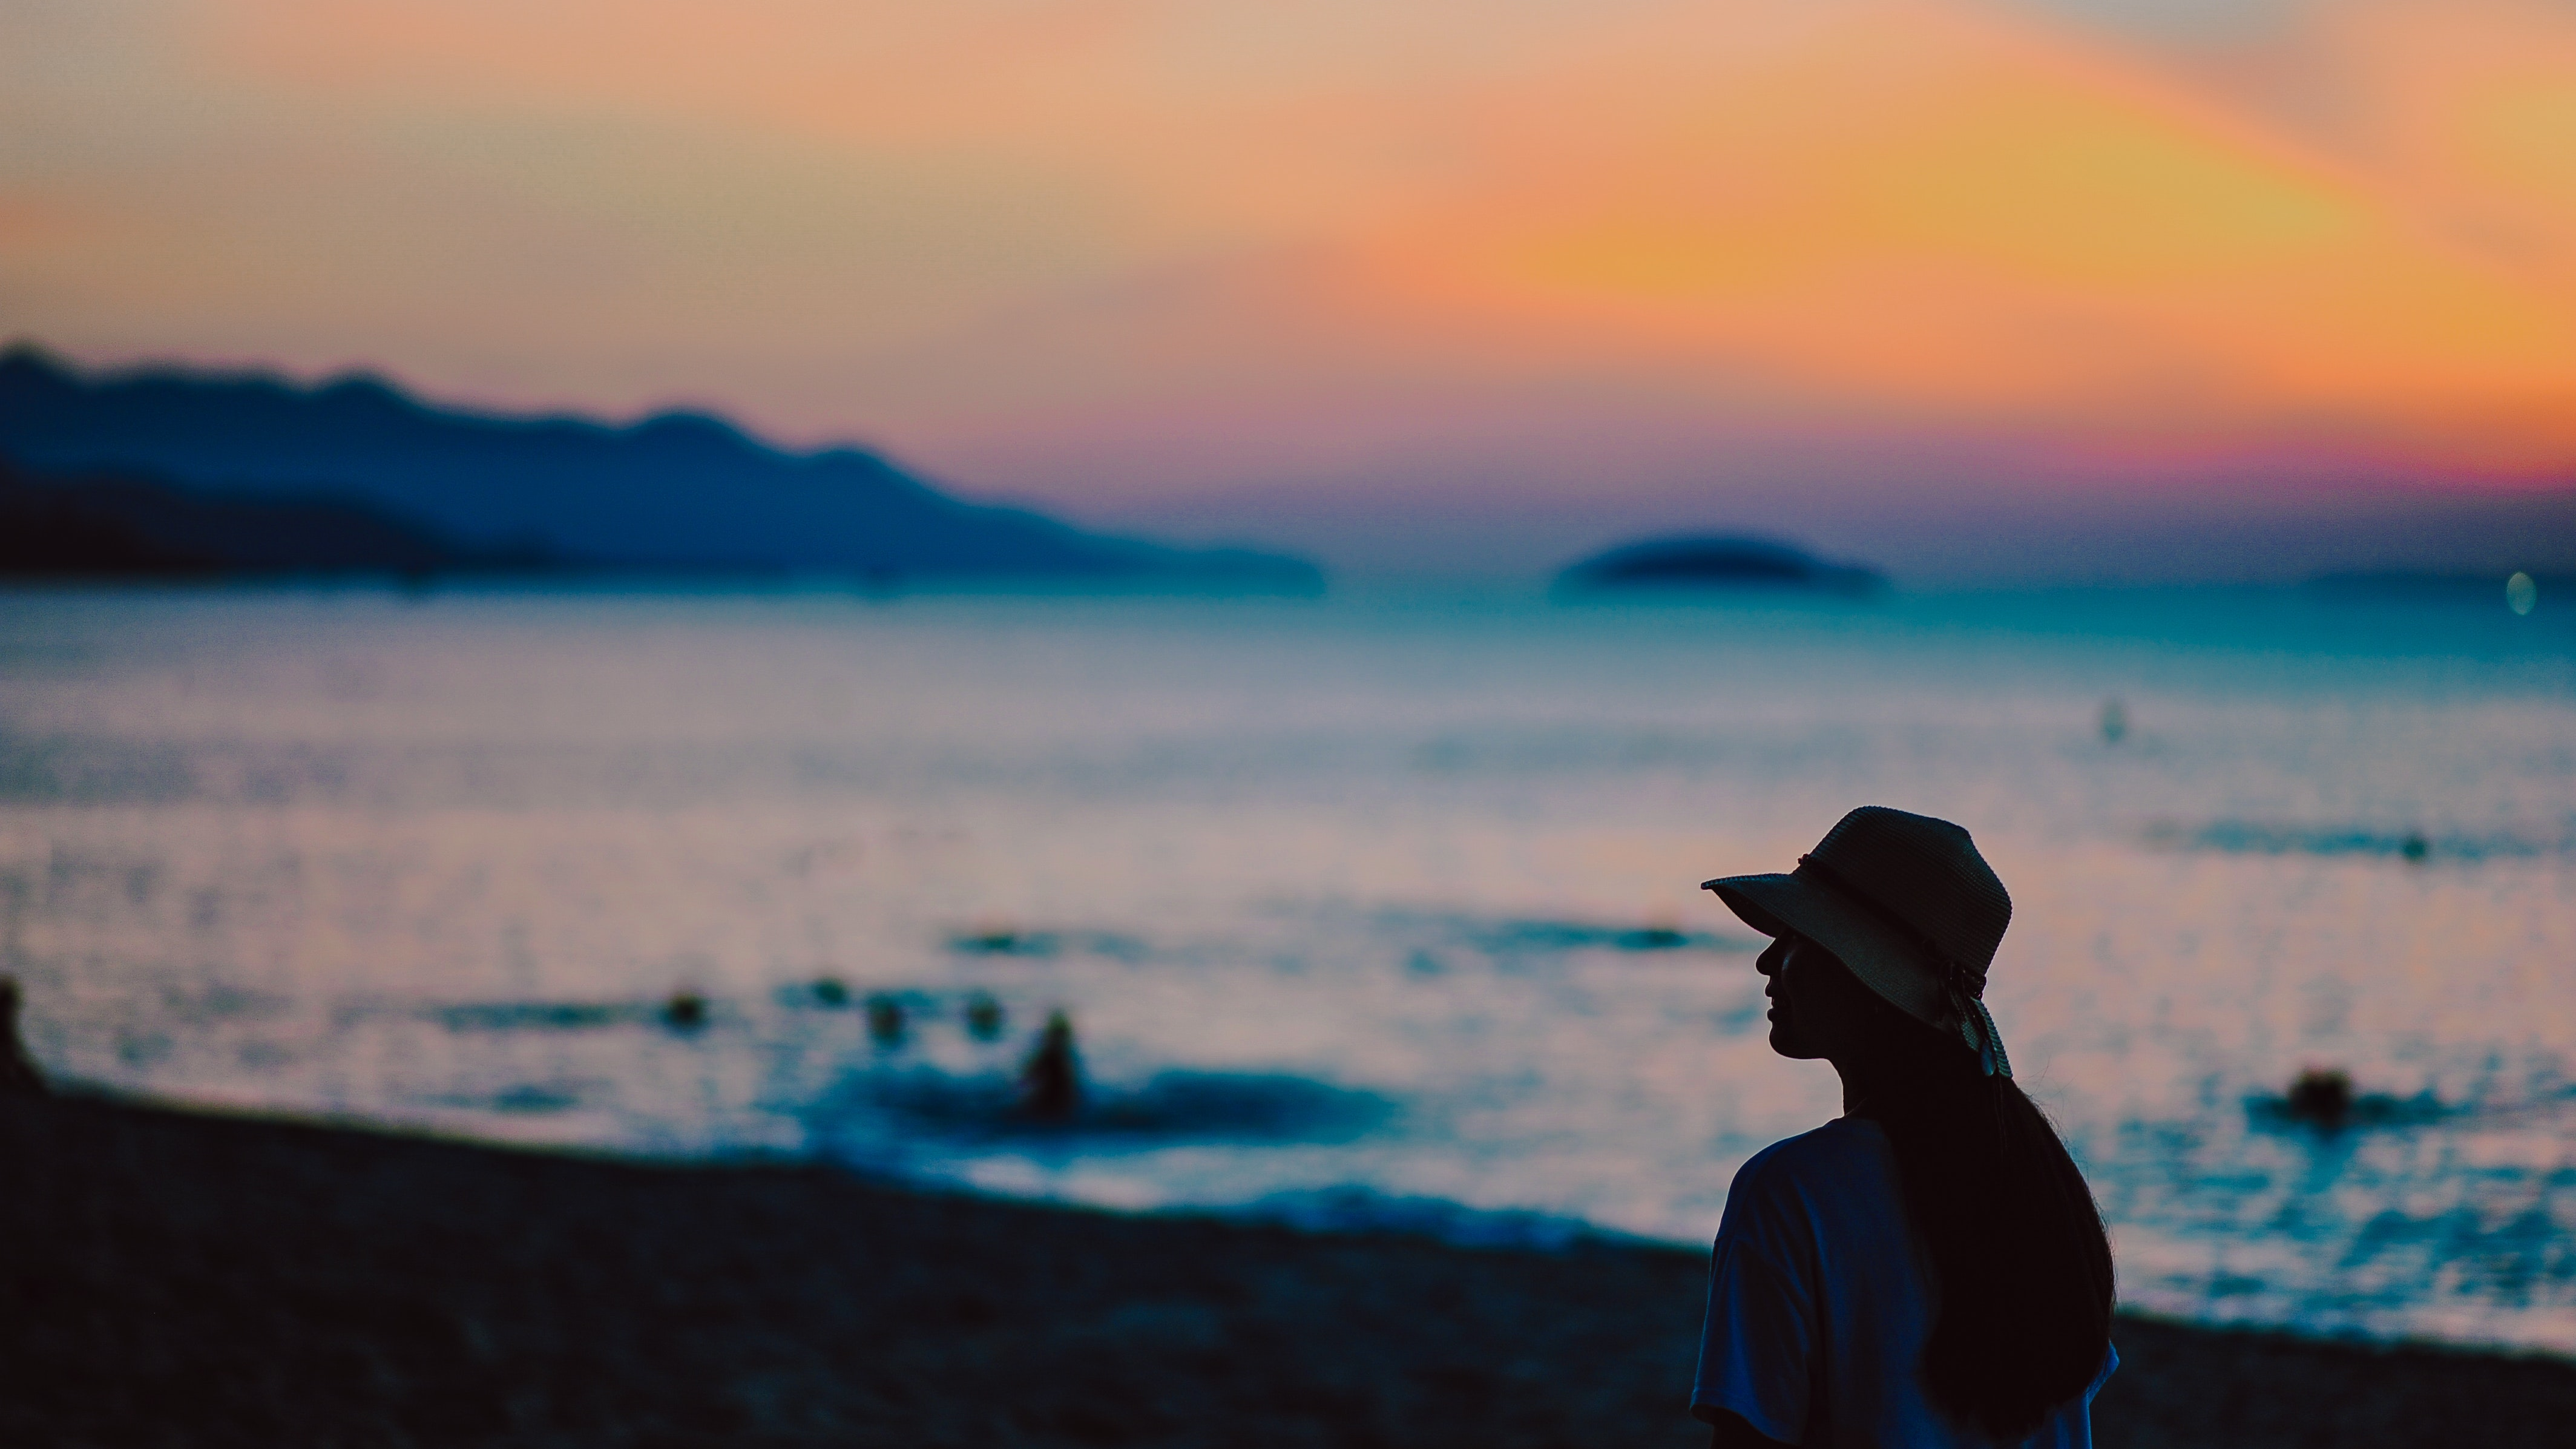 Photography of A Person During Dawn, Afterglow, Outdoors, Silhouette, Shore, HQ Photo